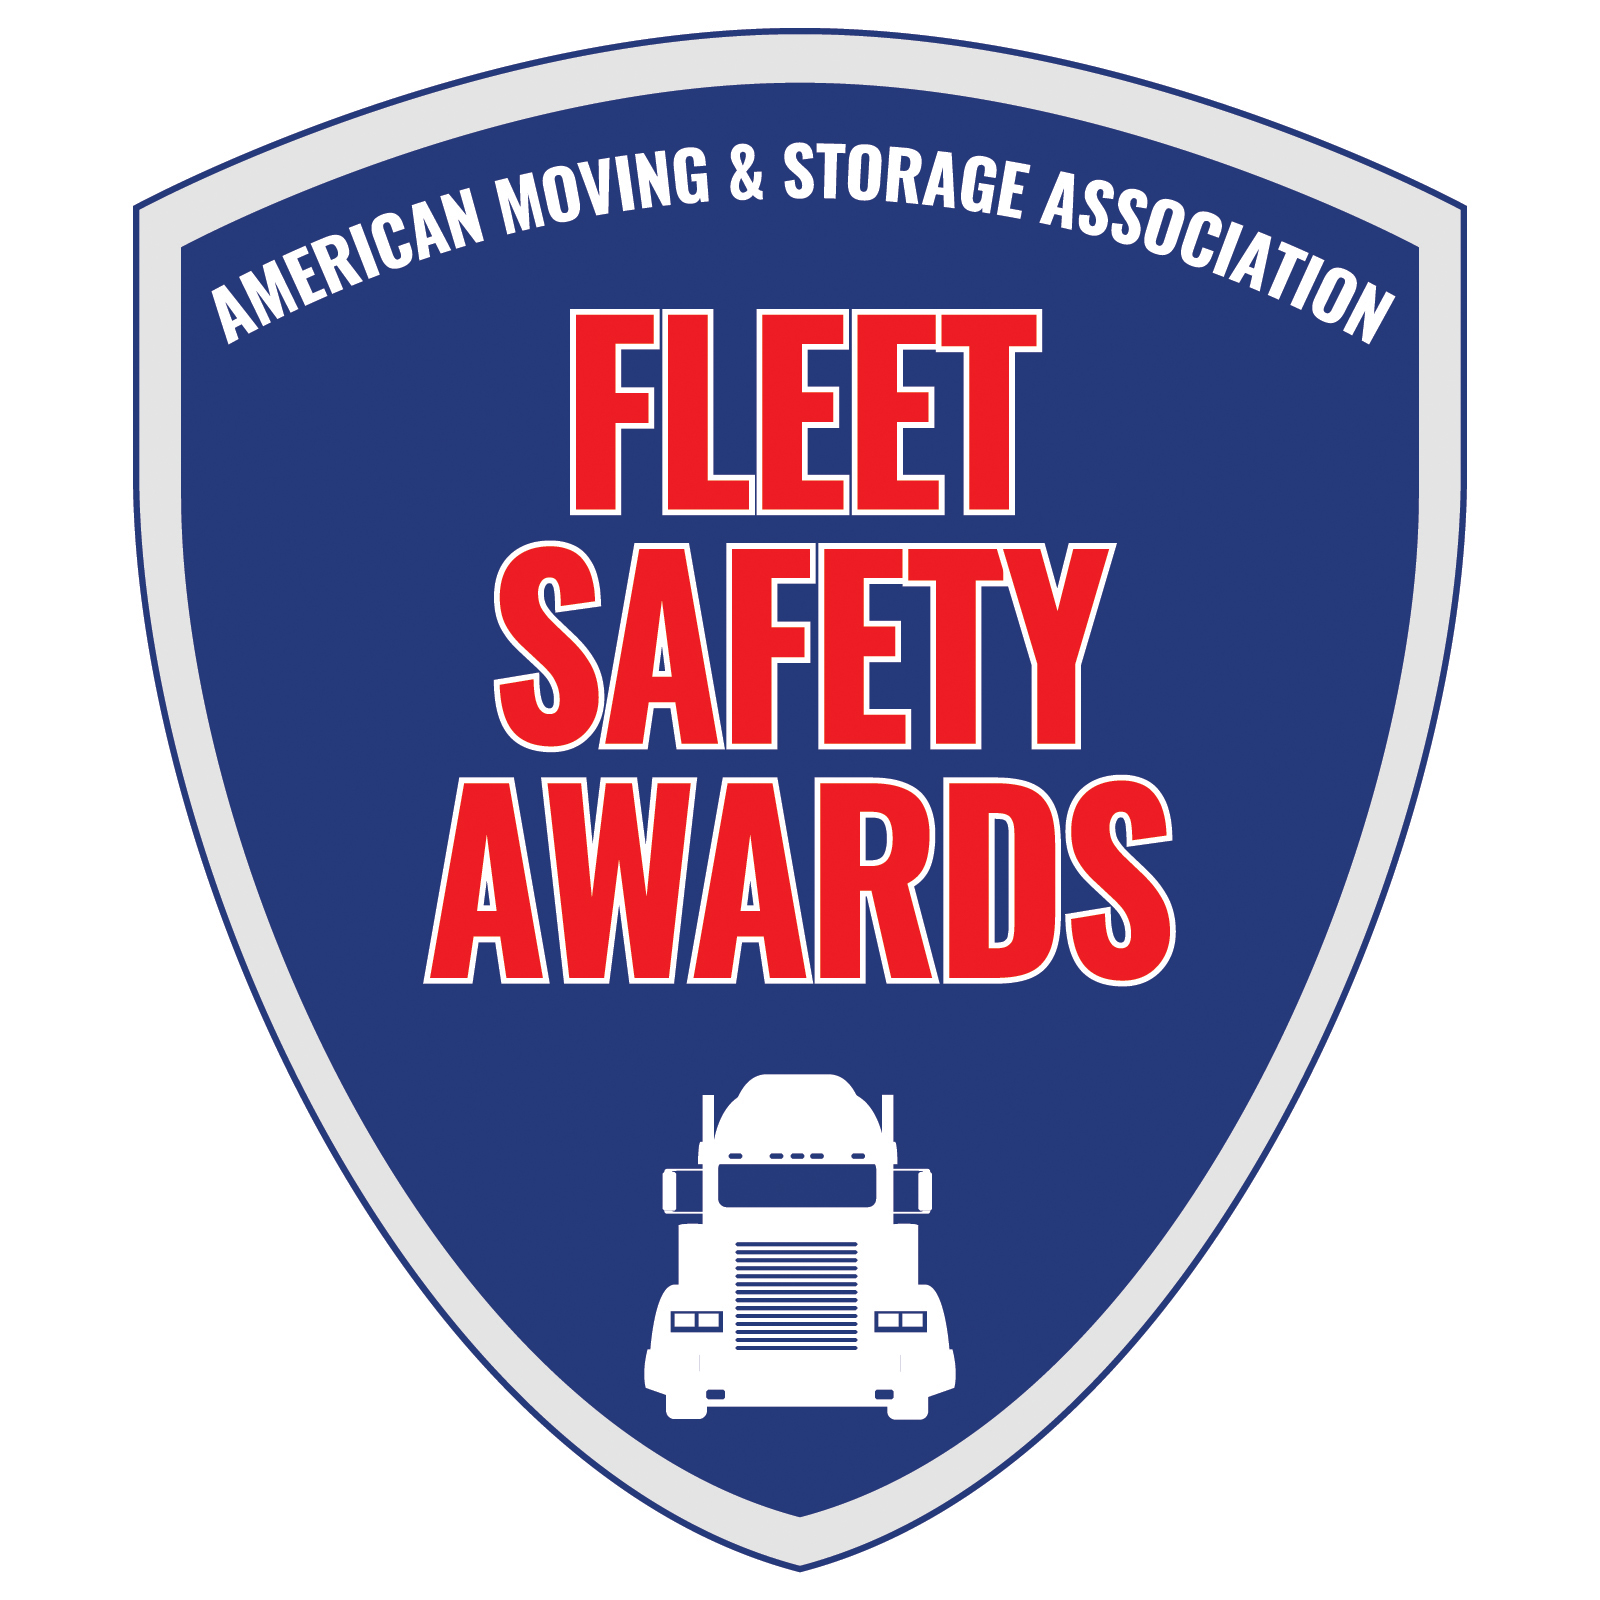 AMSA Fleet Safety Awards